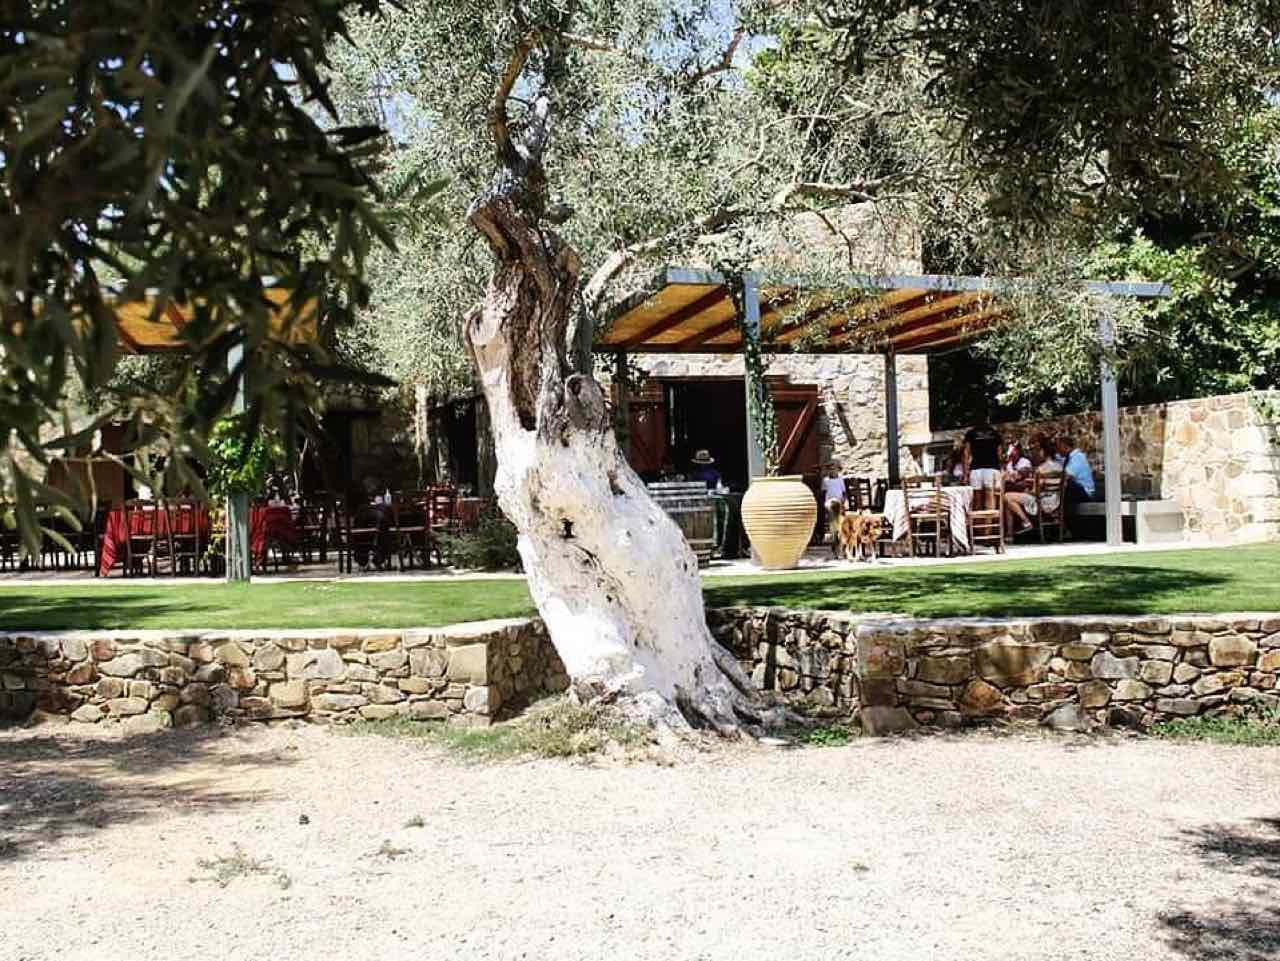 winery tours, wine tasting manousakis winery chania crete, winery visit manousakis winery, bio organic wine chania crete, vineyard tours, bio wine food tasting chania crete, best organic winey crete greece, Organic, boutique winery handcrafted wine, nostos wines chania crete